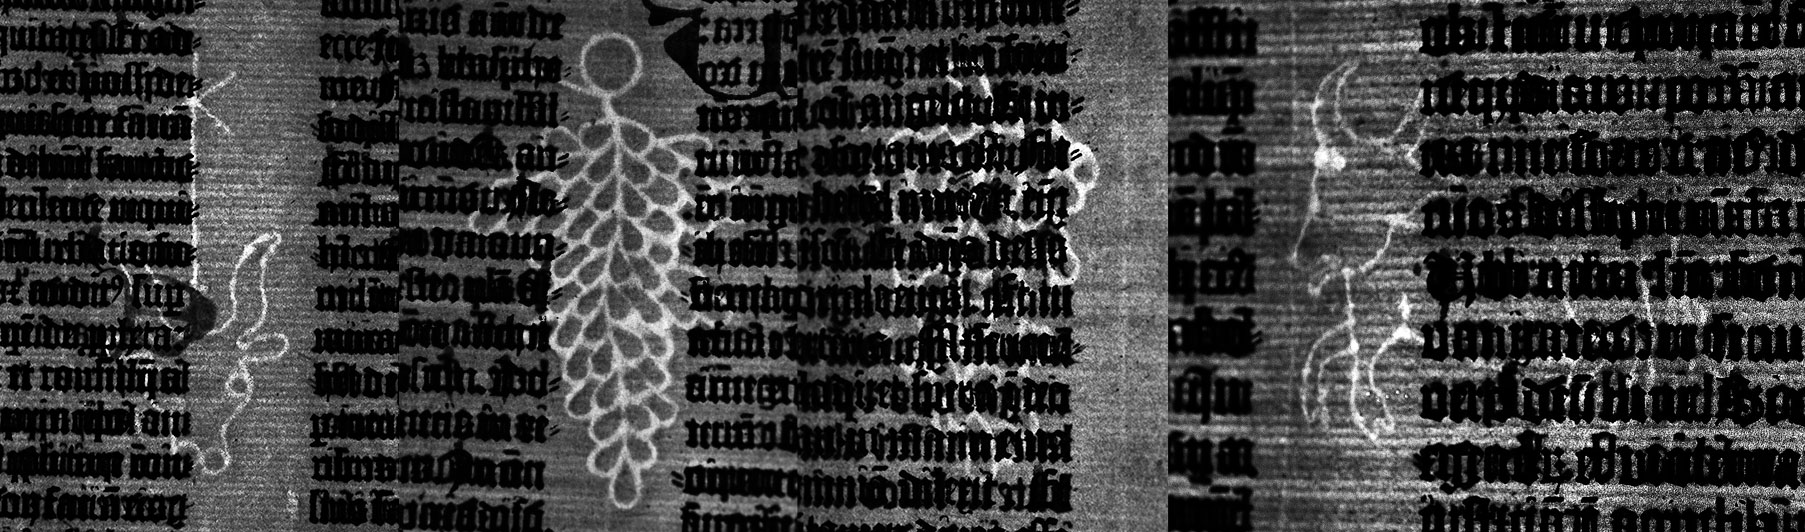 The four basic watermarks that appear in copies of the Gutenberg Bible. These photographs from the Ransom Center's copy were taken with the aid of transmitted light and have been edited to increase contrast.